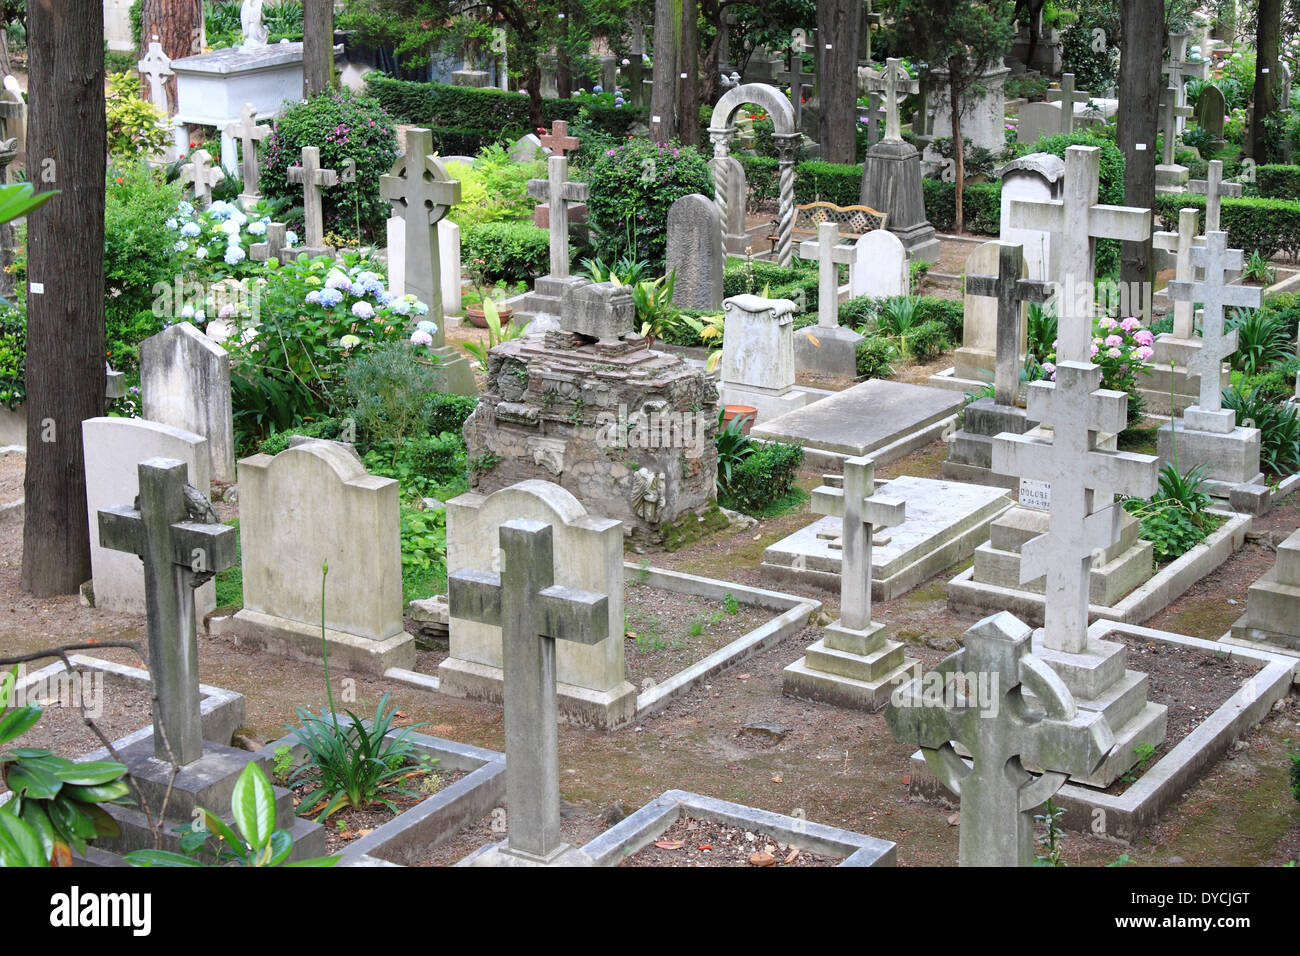 Landscape view of a burying ground - Stock Image